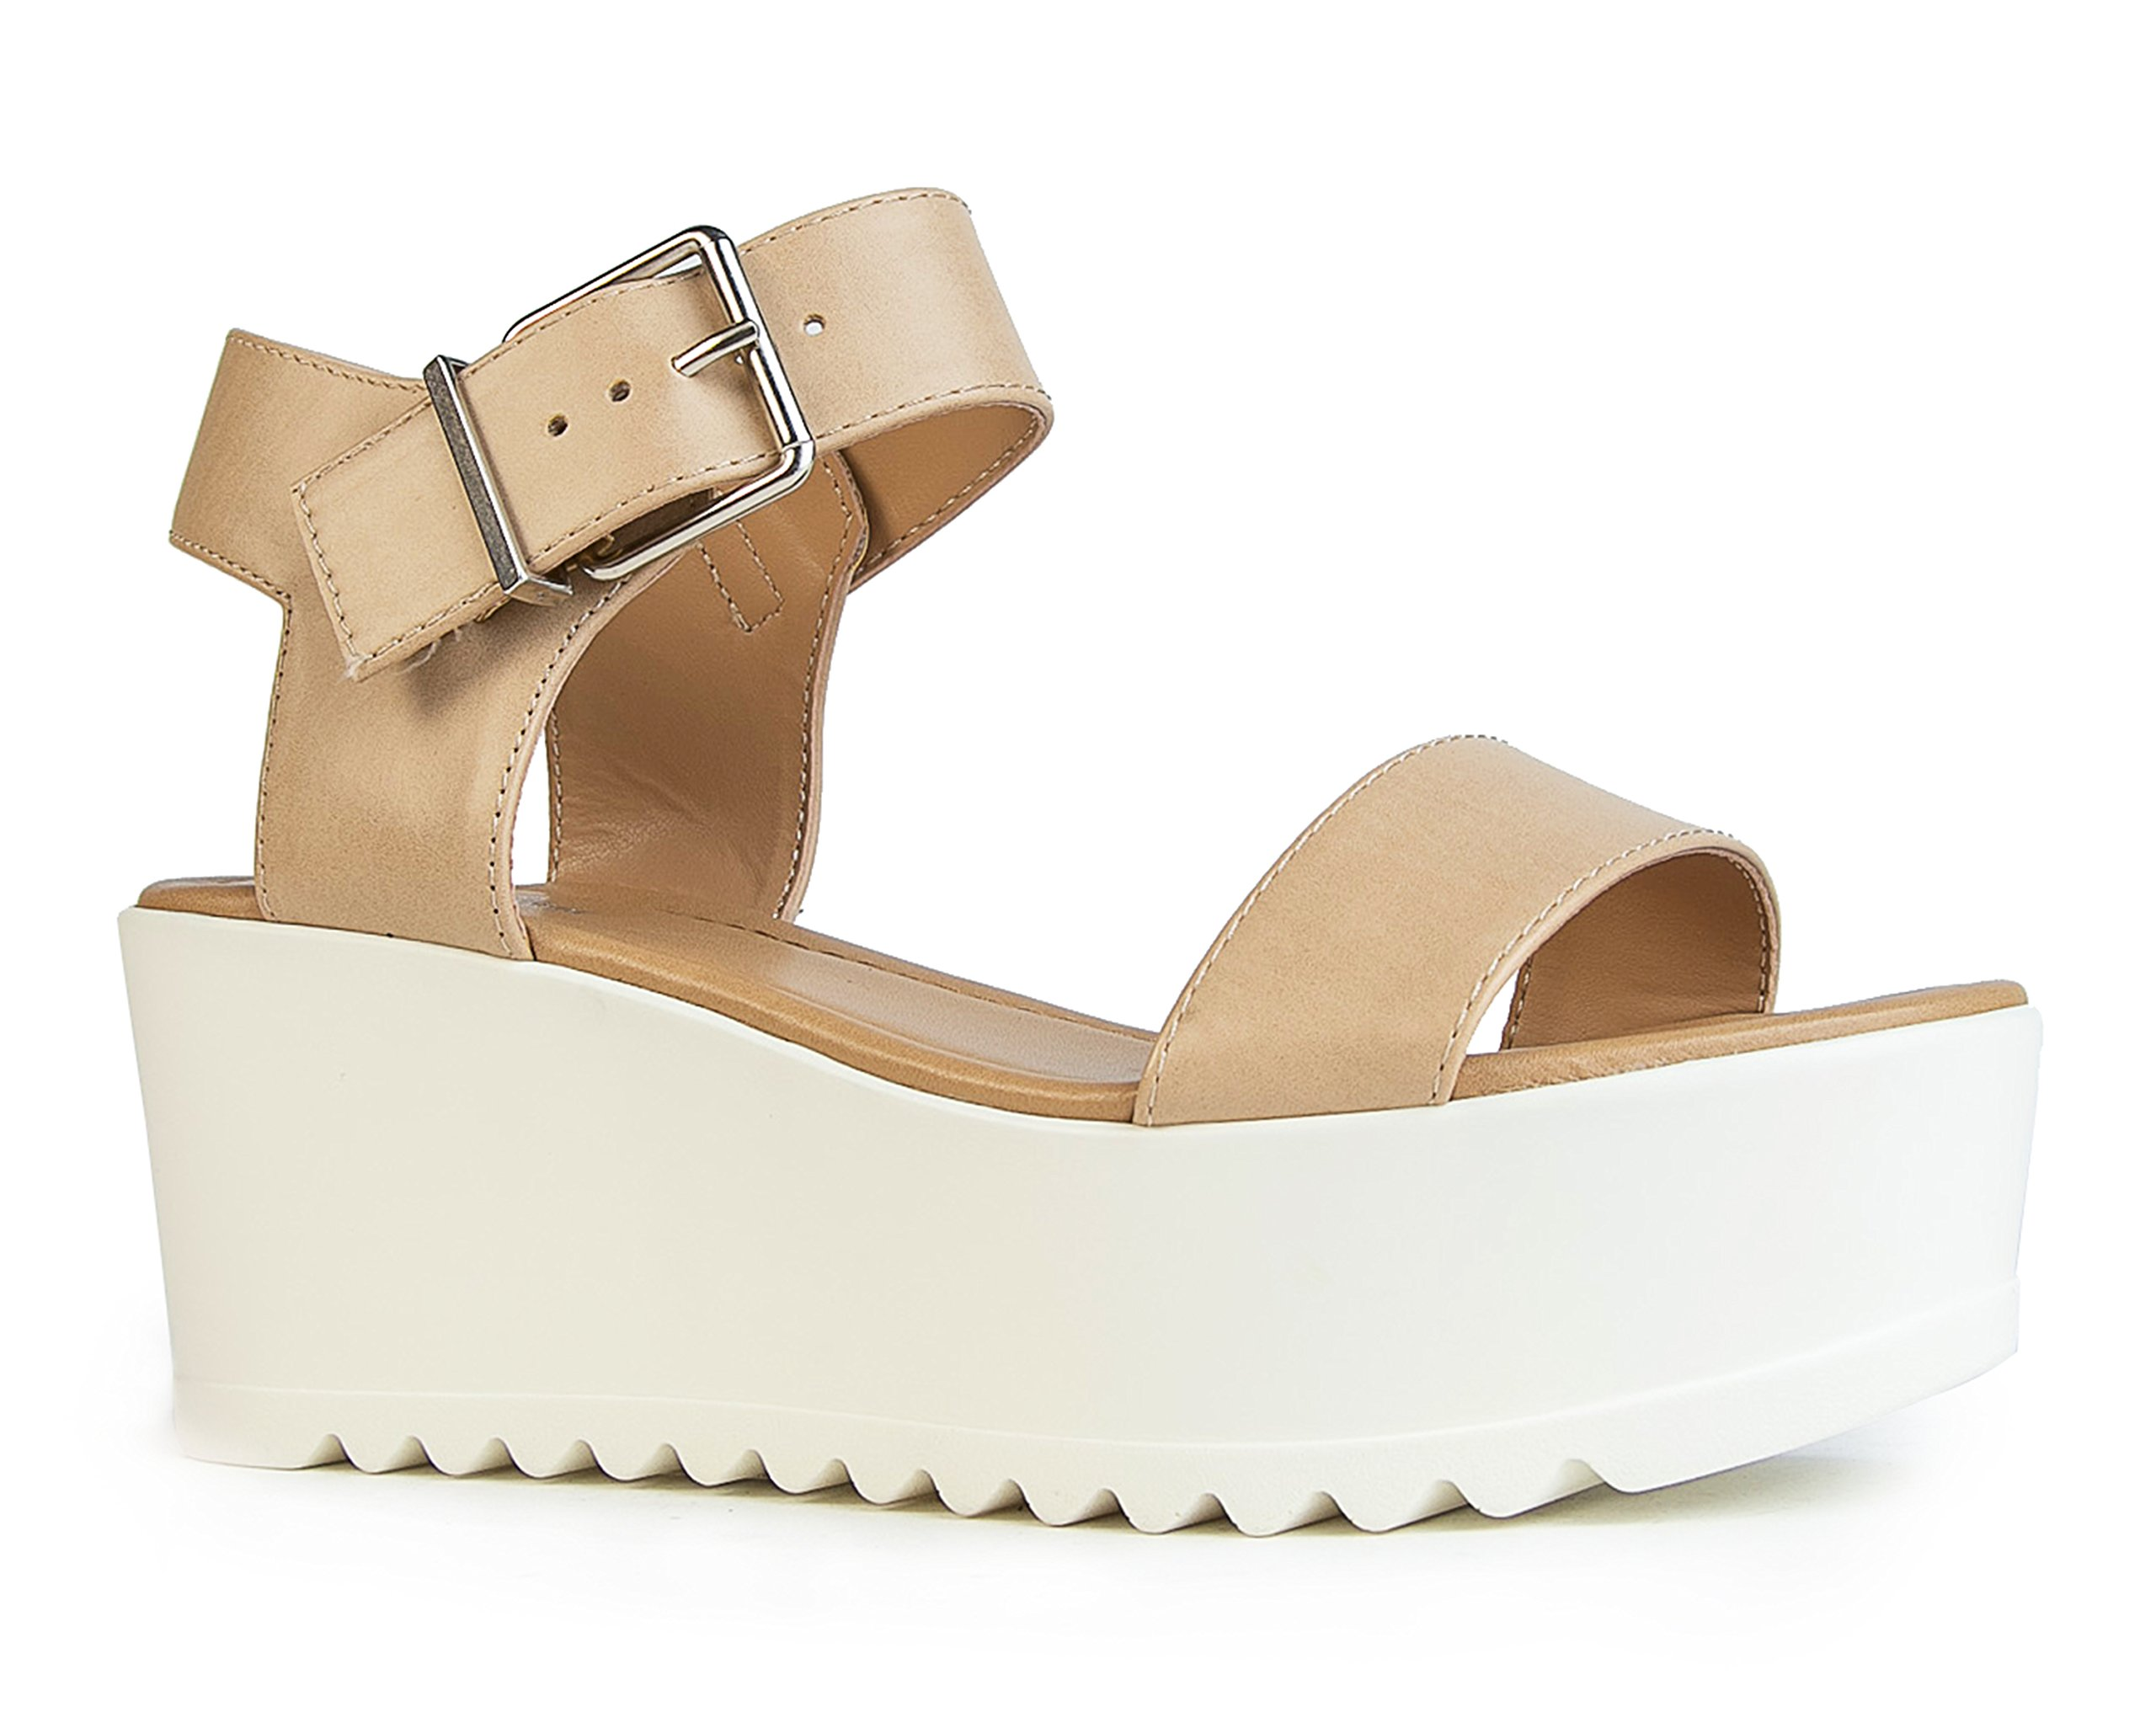 J. Adams Surf Women's Platform Open Toe Buckle Sandal